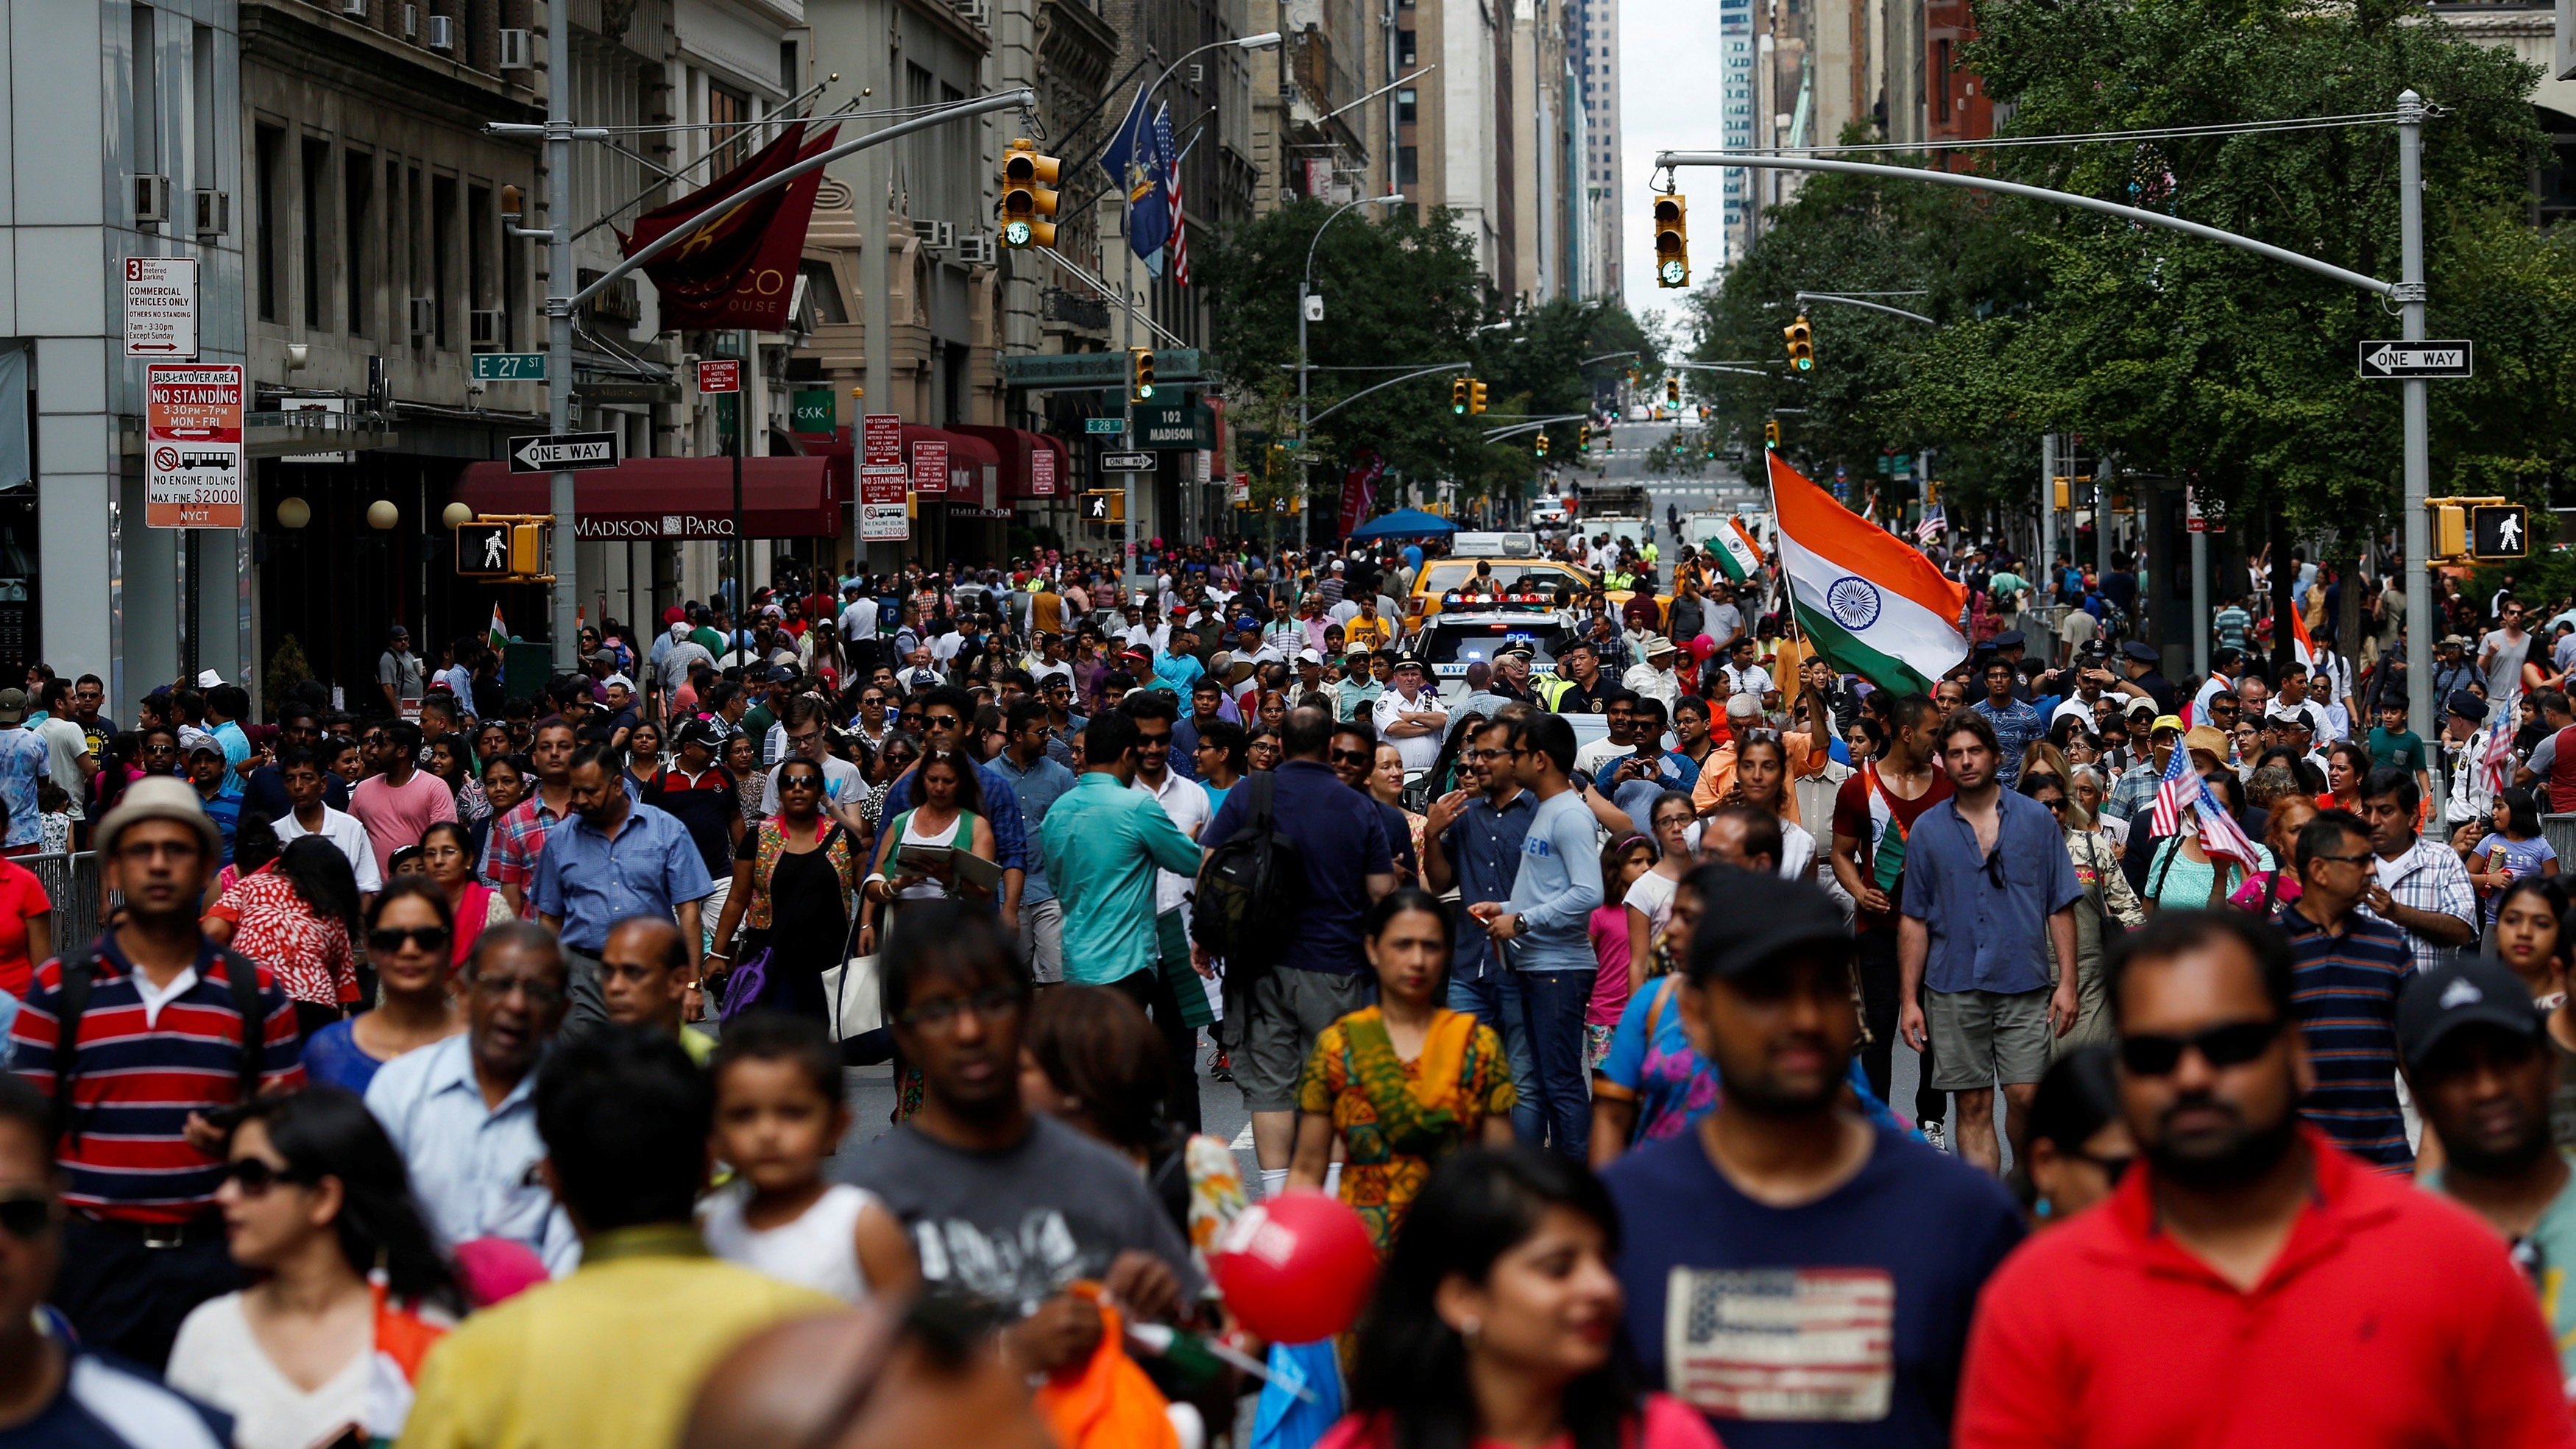 People take part in the annual India Day Parade in Manhattan, New York, U.S., August 21, 2016. REUTERS/Eduardo Munoz  - RTX2MG9B